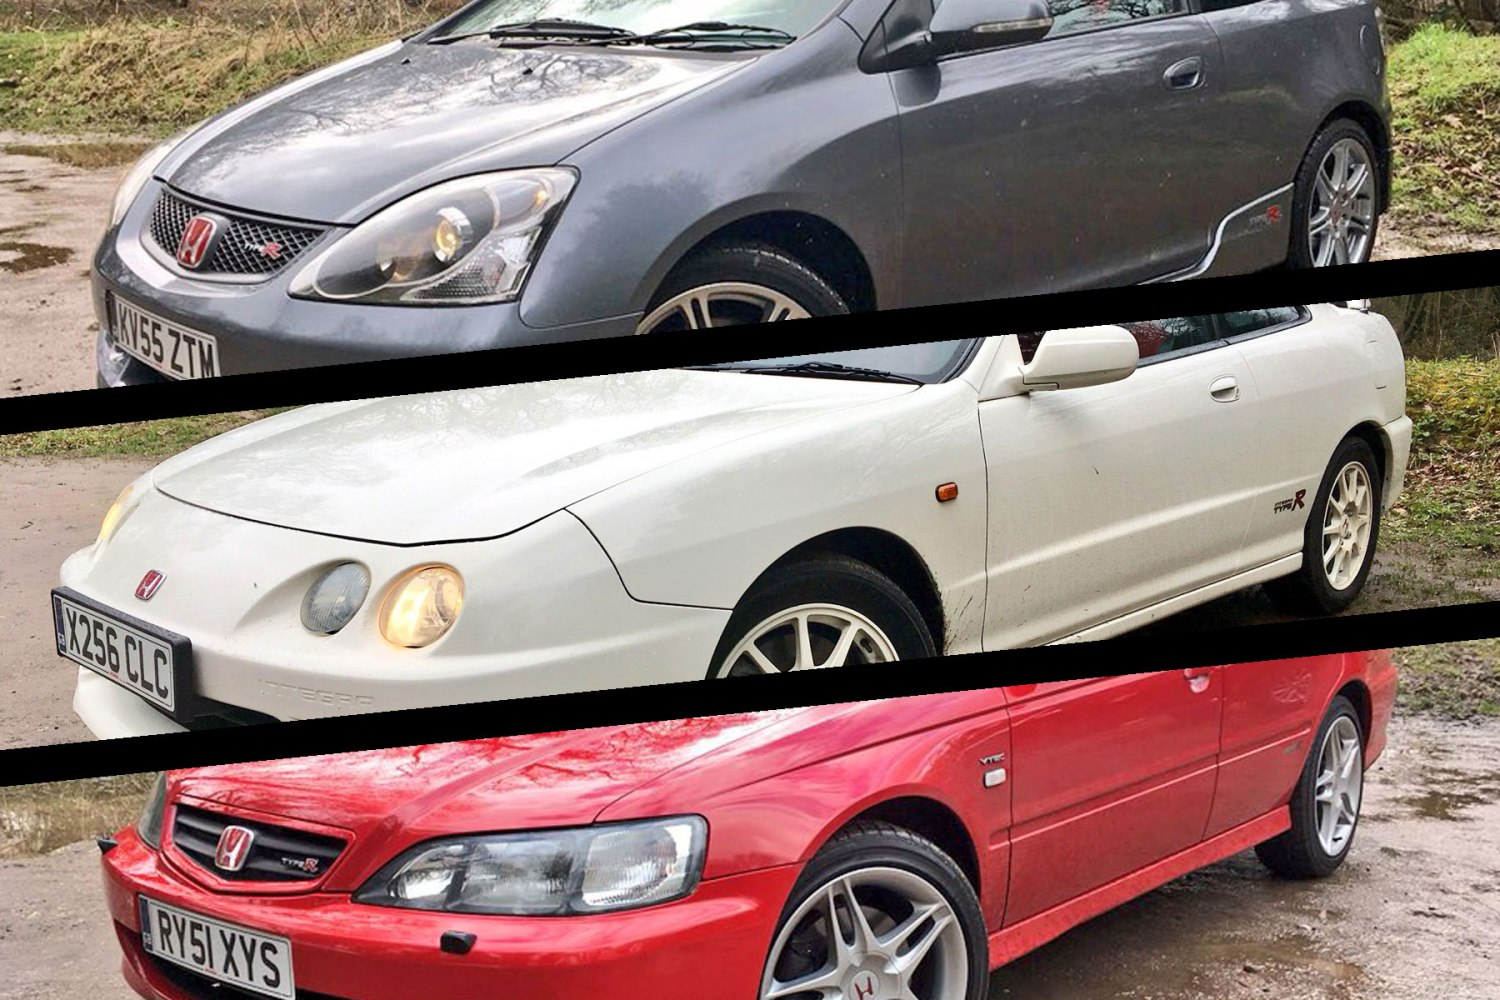 Affordable Honda Type-Rs: which should you buy?